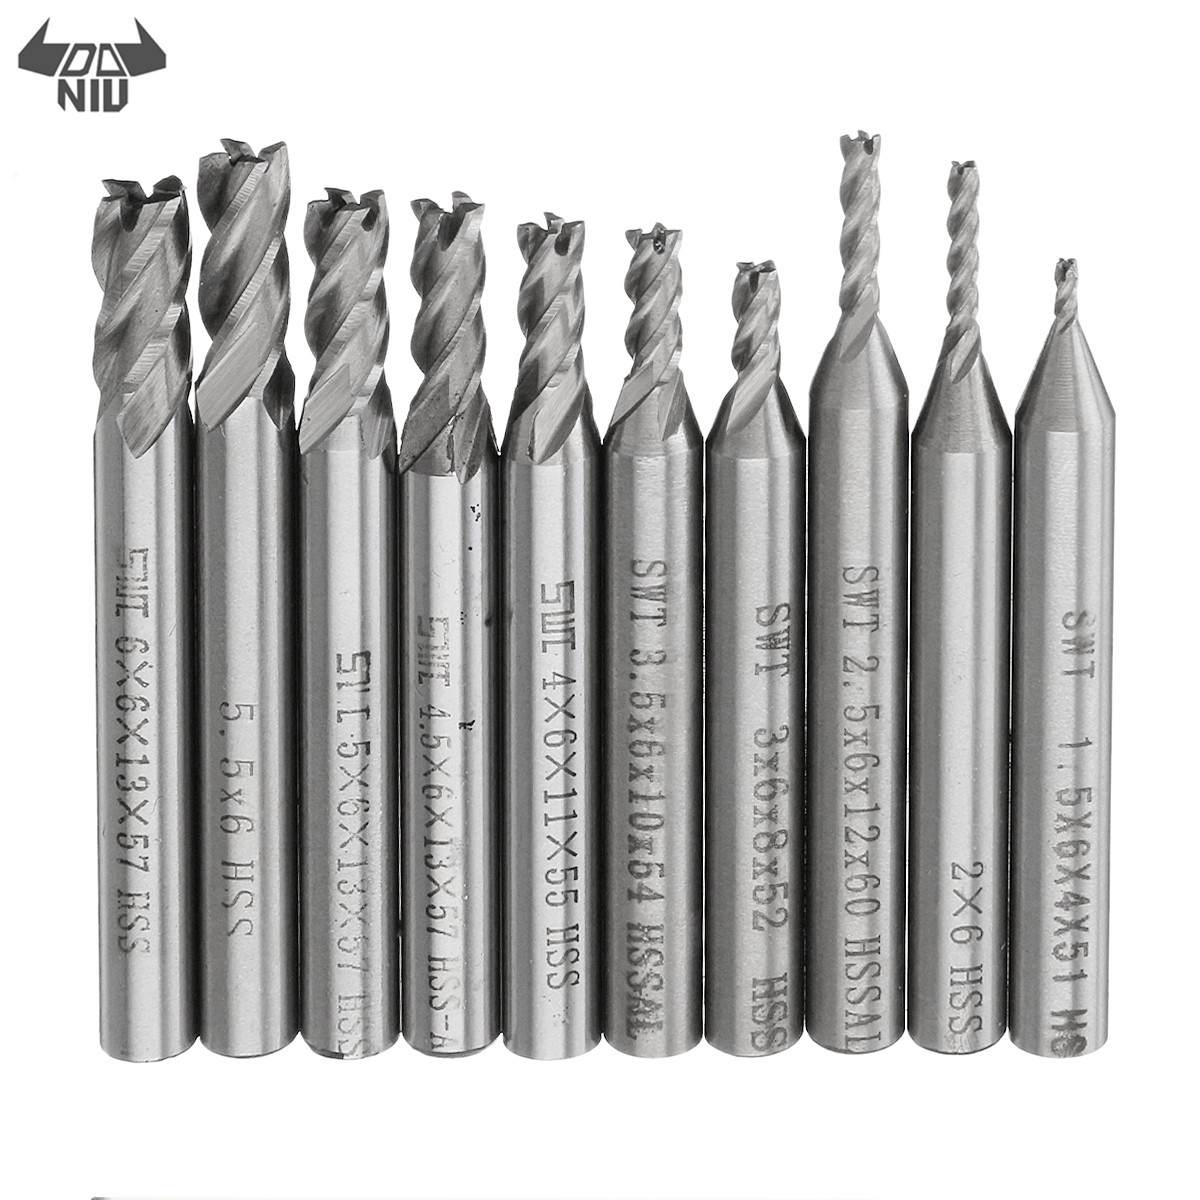 DANIU 10pcs/set 1.5-6mm HSS 4 Flute End Mill Cutter 6mm Straight Shank CNC Drill Bit Set High Speed Steel